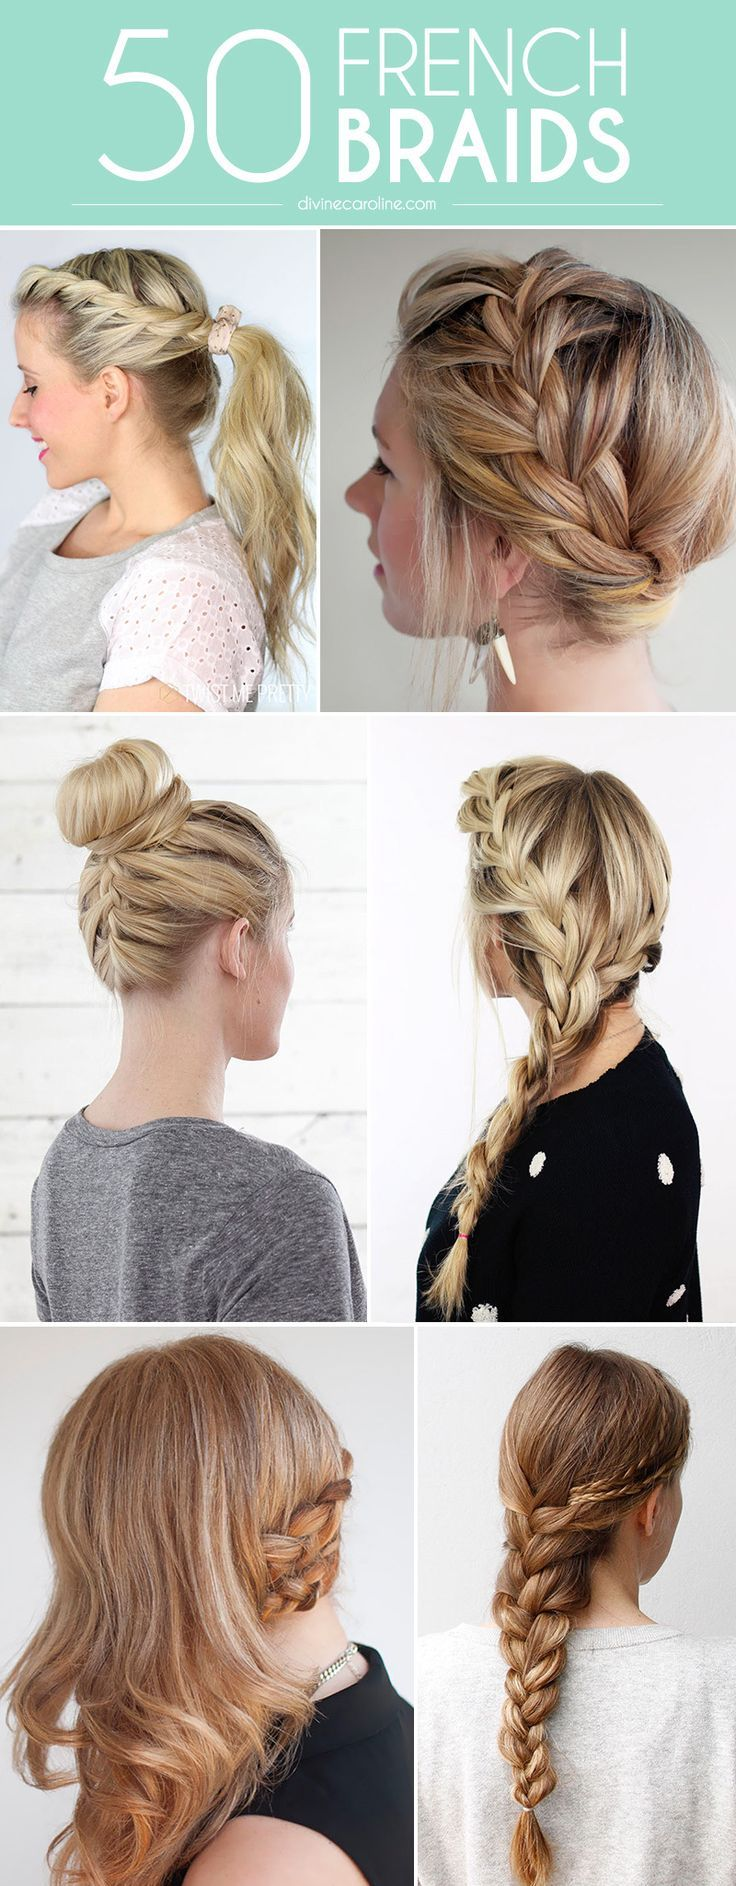 Throw the plain ol' ponytail style out the window! With these 50 French braids, you'll find a braid variation perfect for your next occasion. #Hairstyles